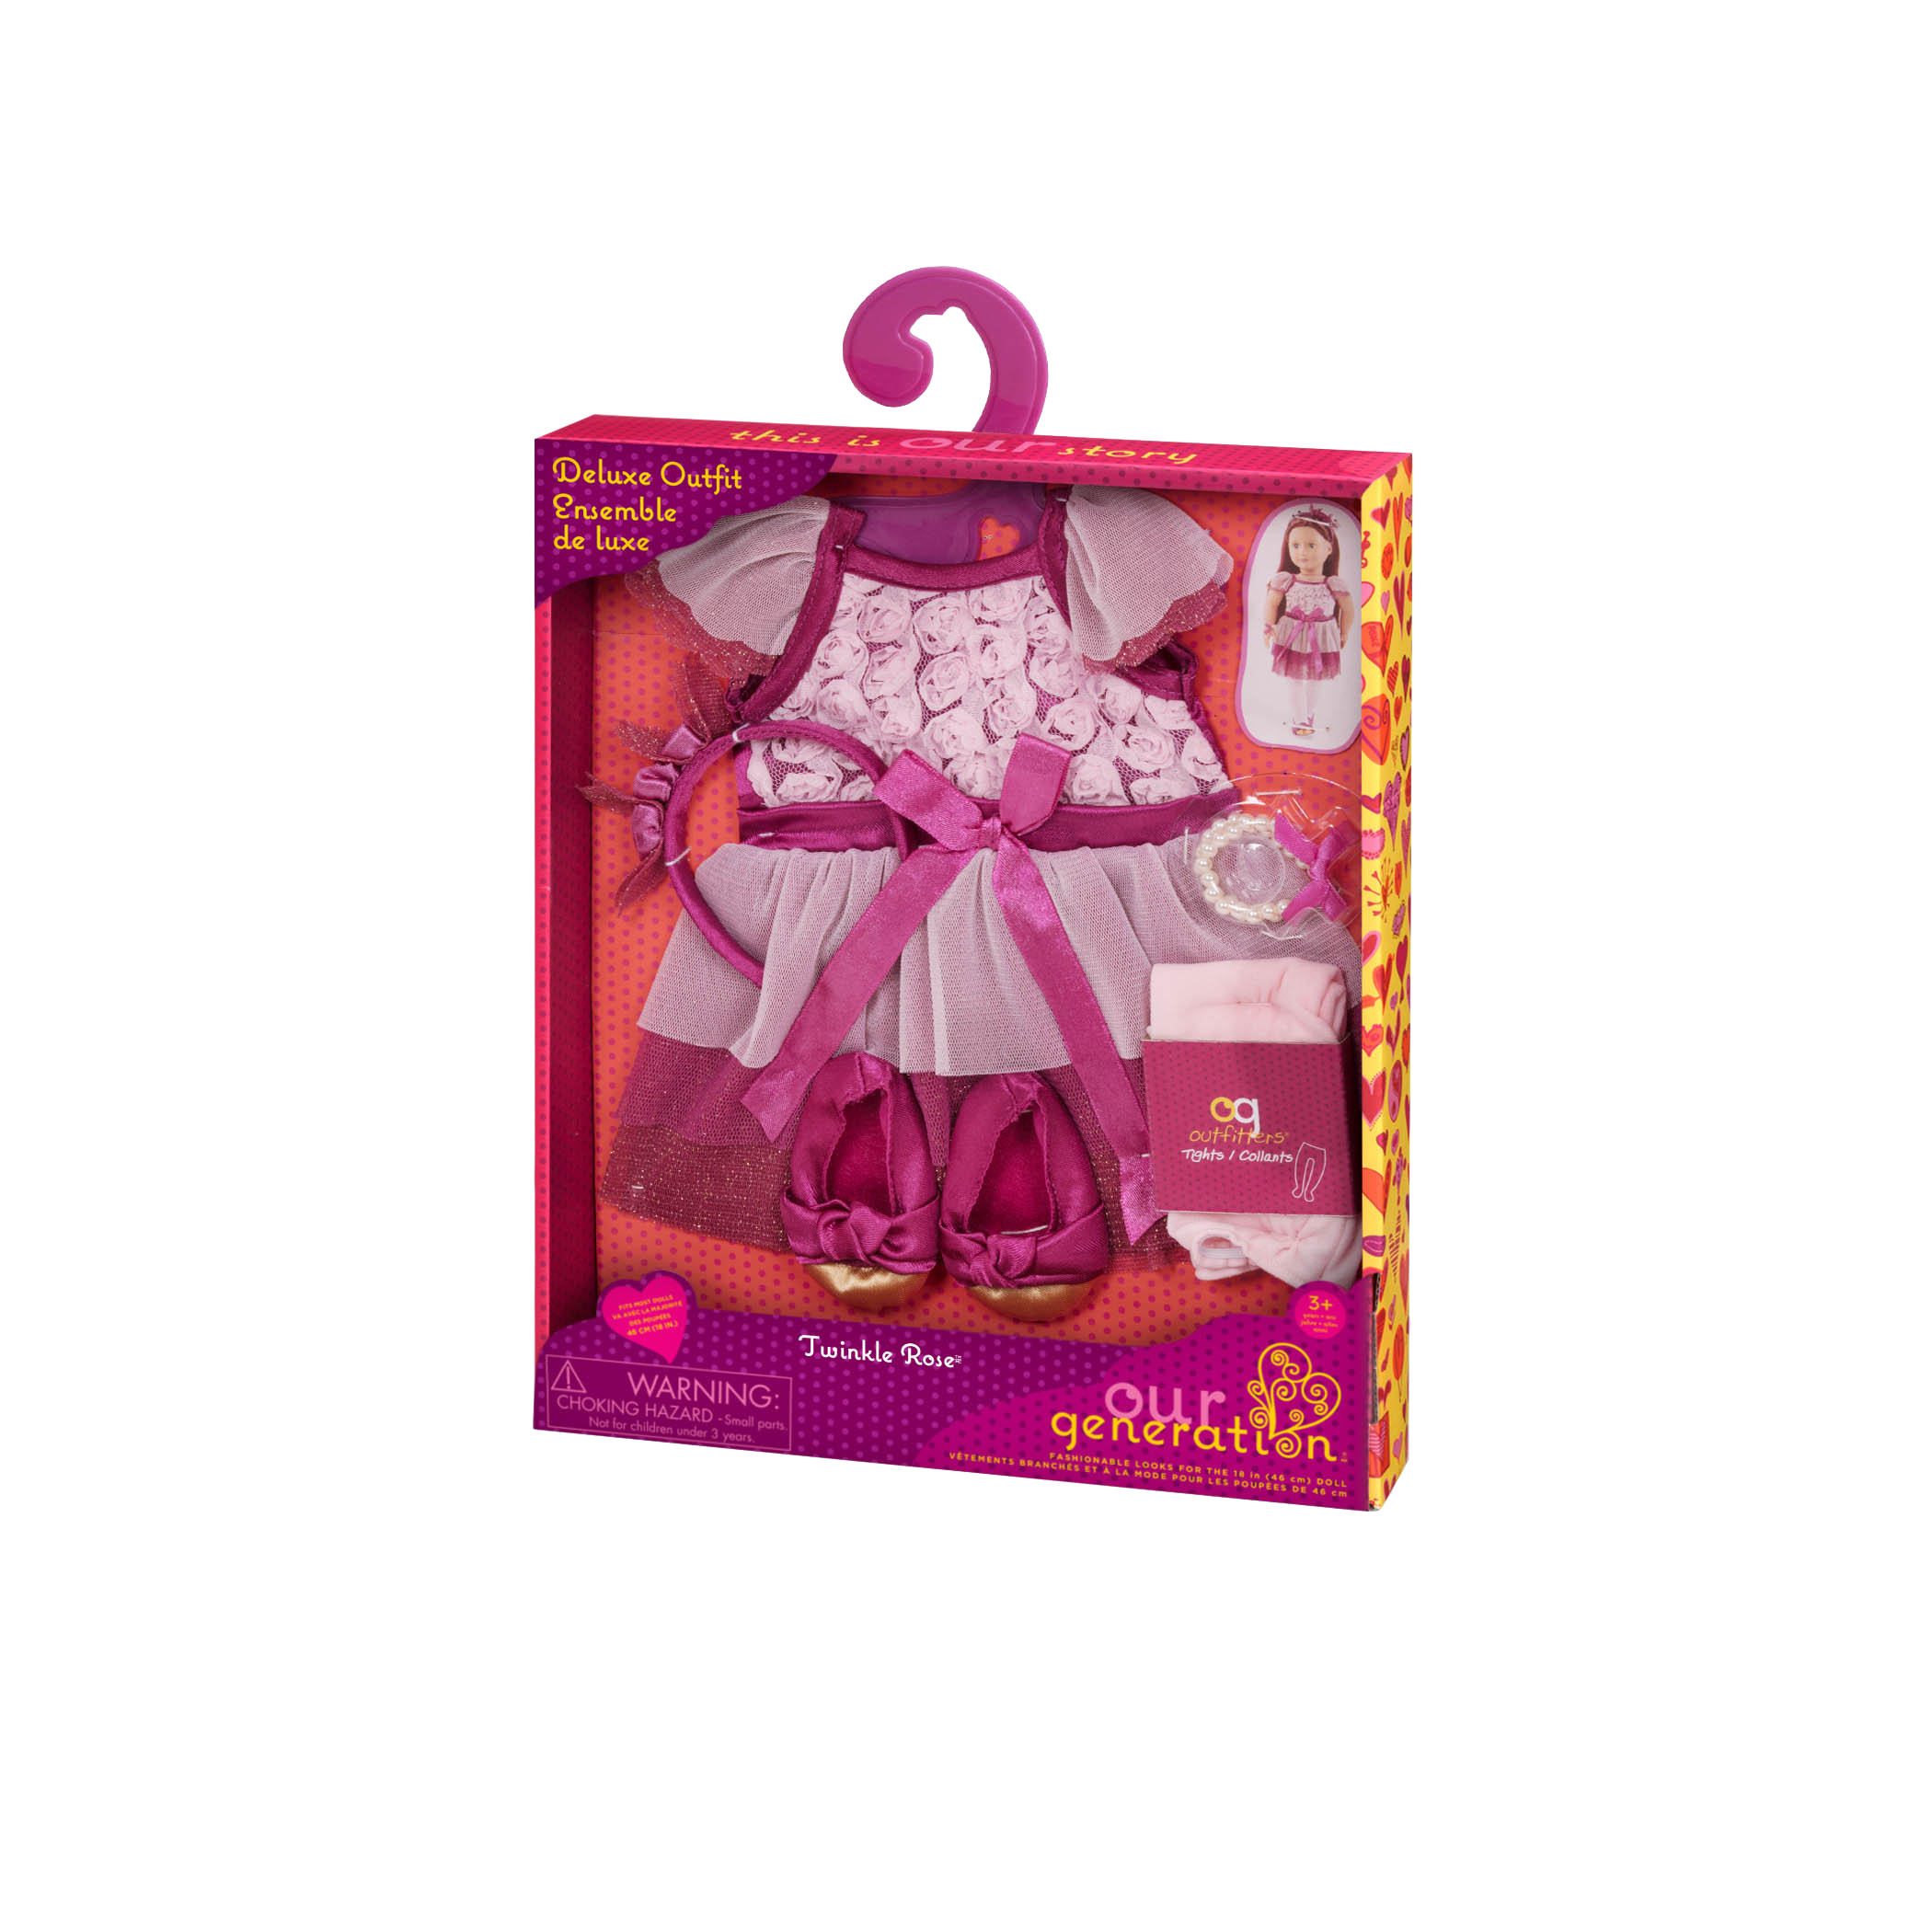 Twinkle Rose Outfit package02